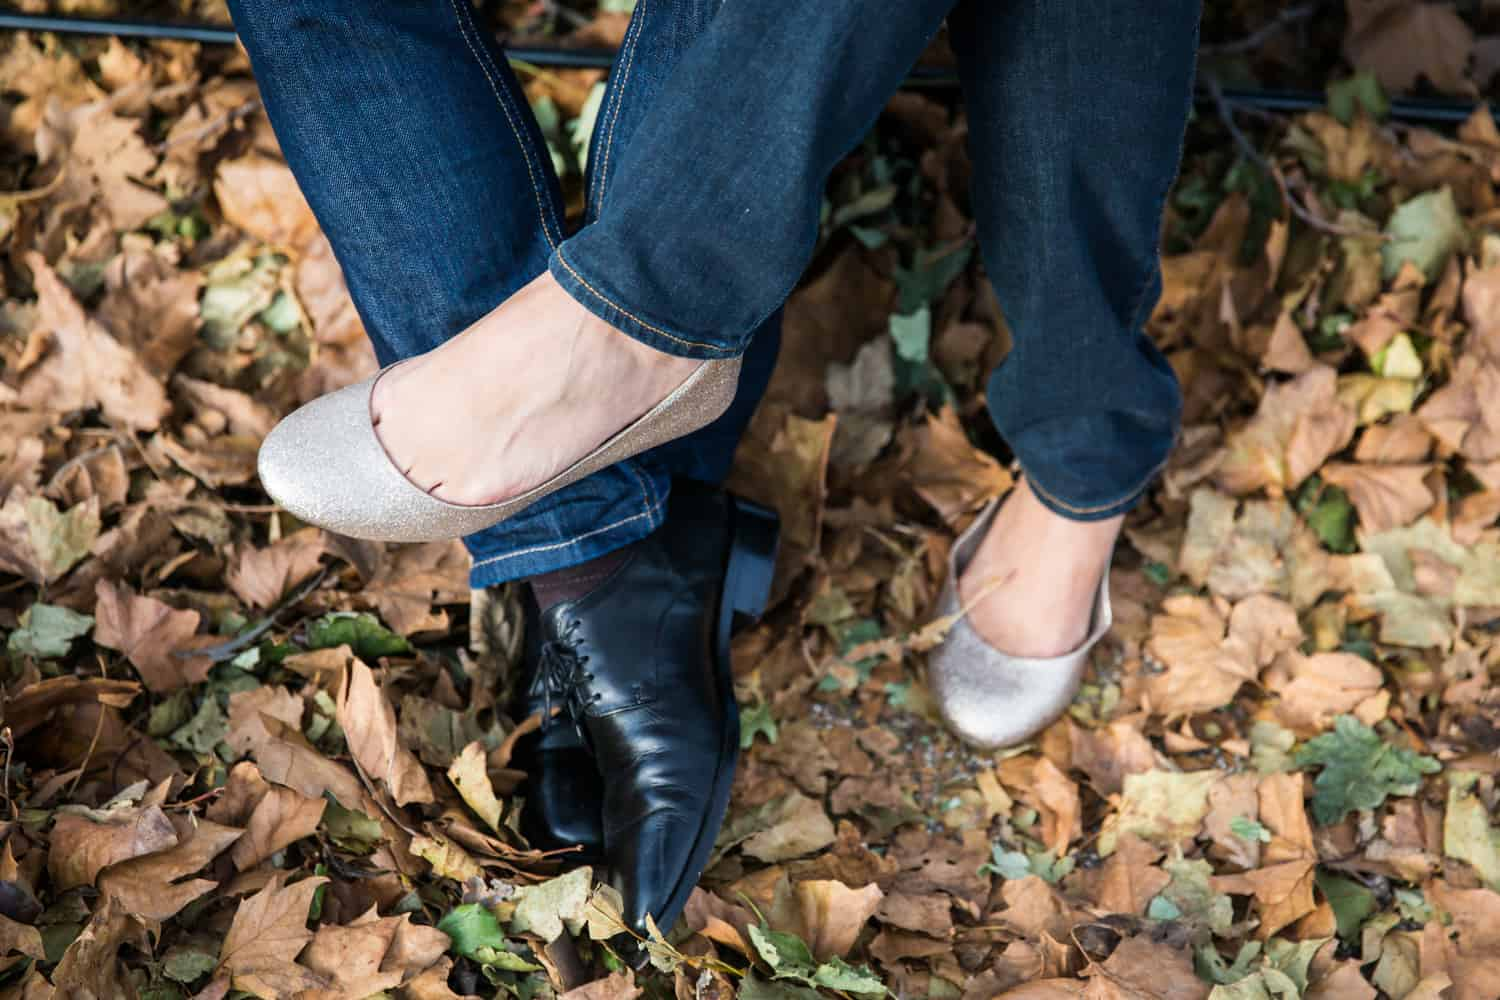 Close up of couple's entwined feet wearing shoes